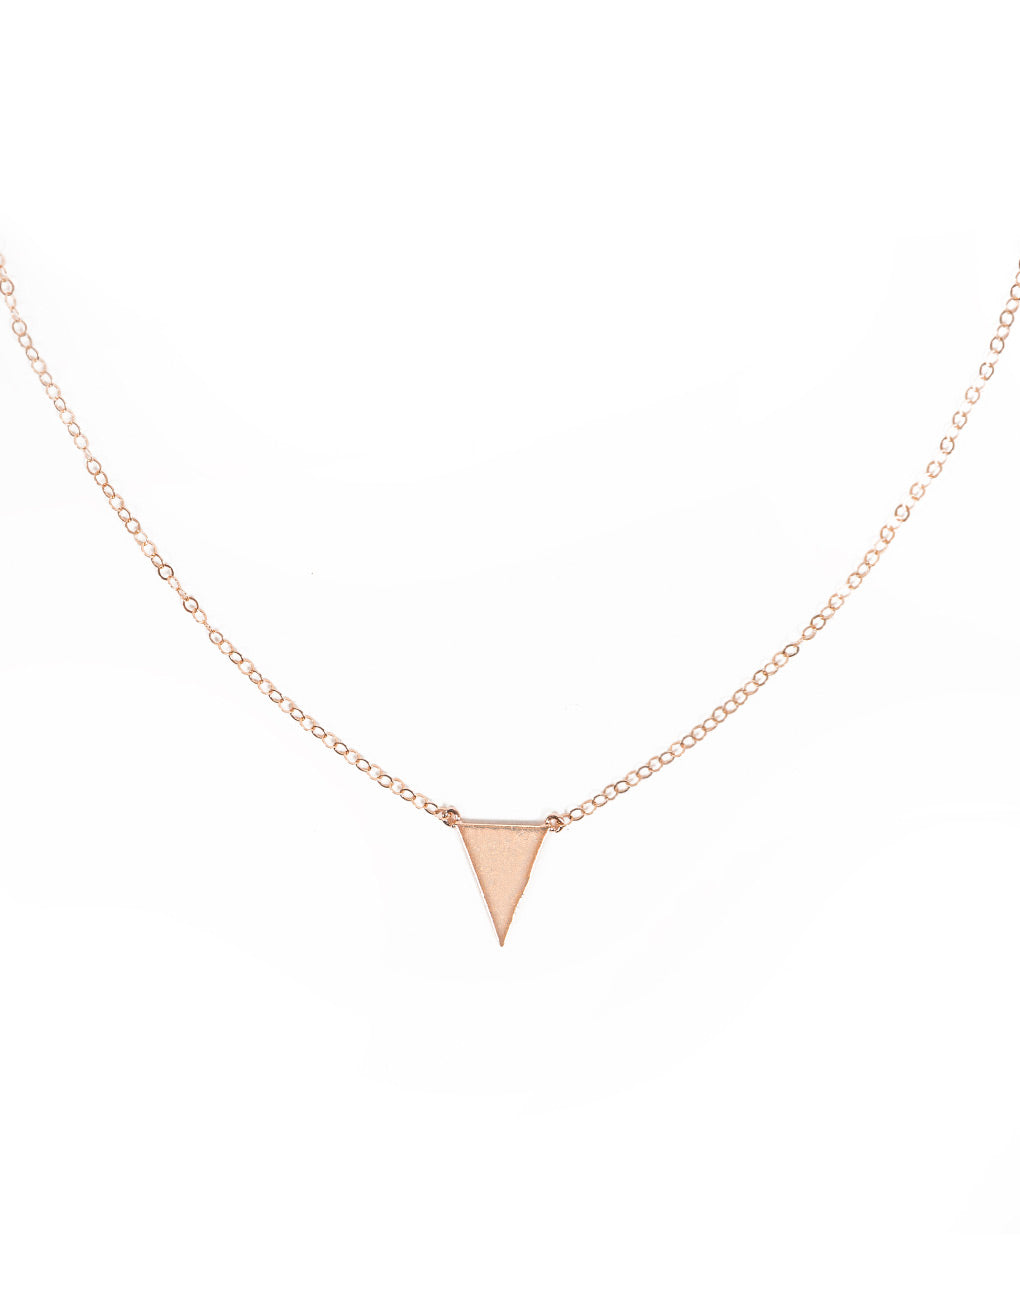 76692075a09 Triangle Necklace - Gold